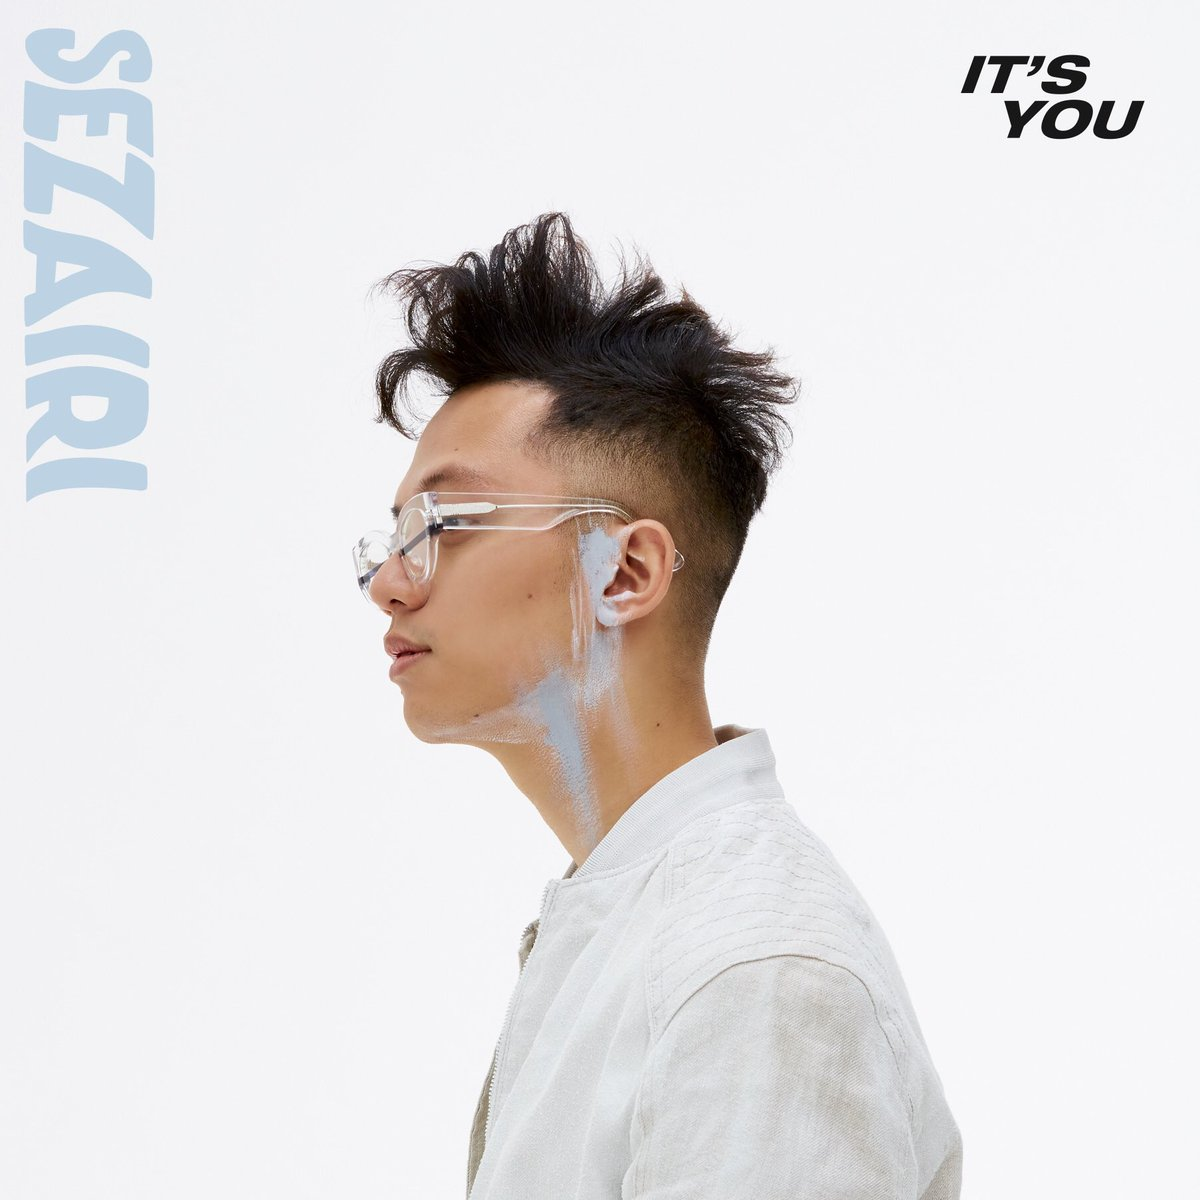 New single #ItsYou out now on digital. Let me know what you think? HAPPY FRIDAY! https://t.co/0KwCmjvh6r https://t.co/mbc72OP4am